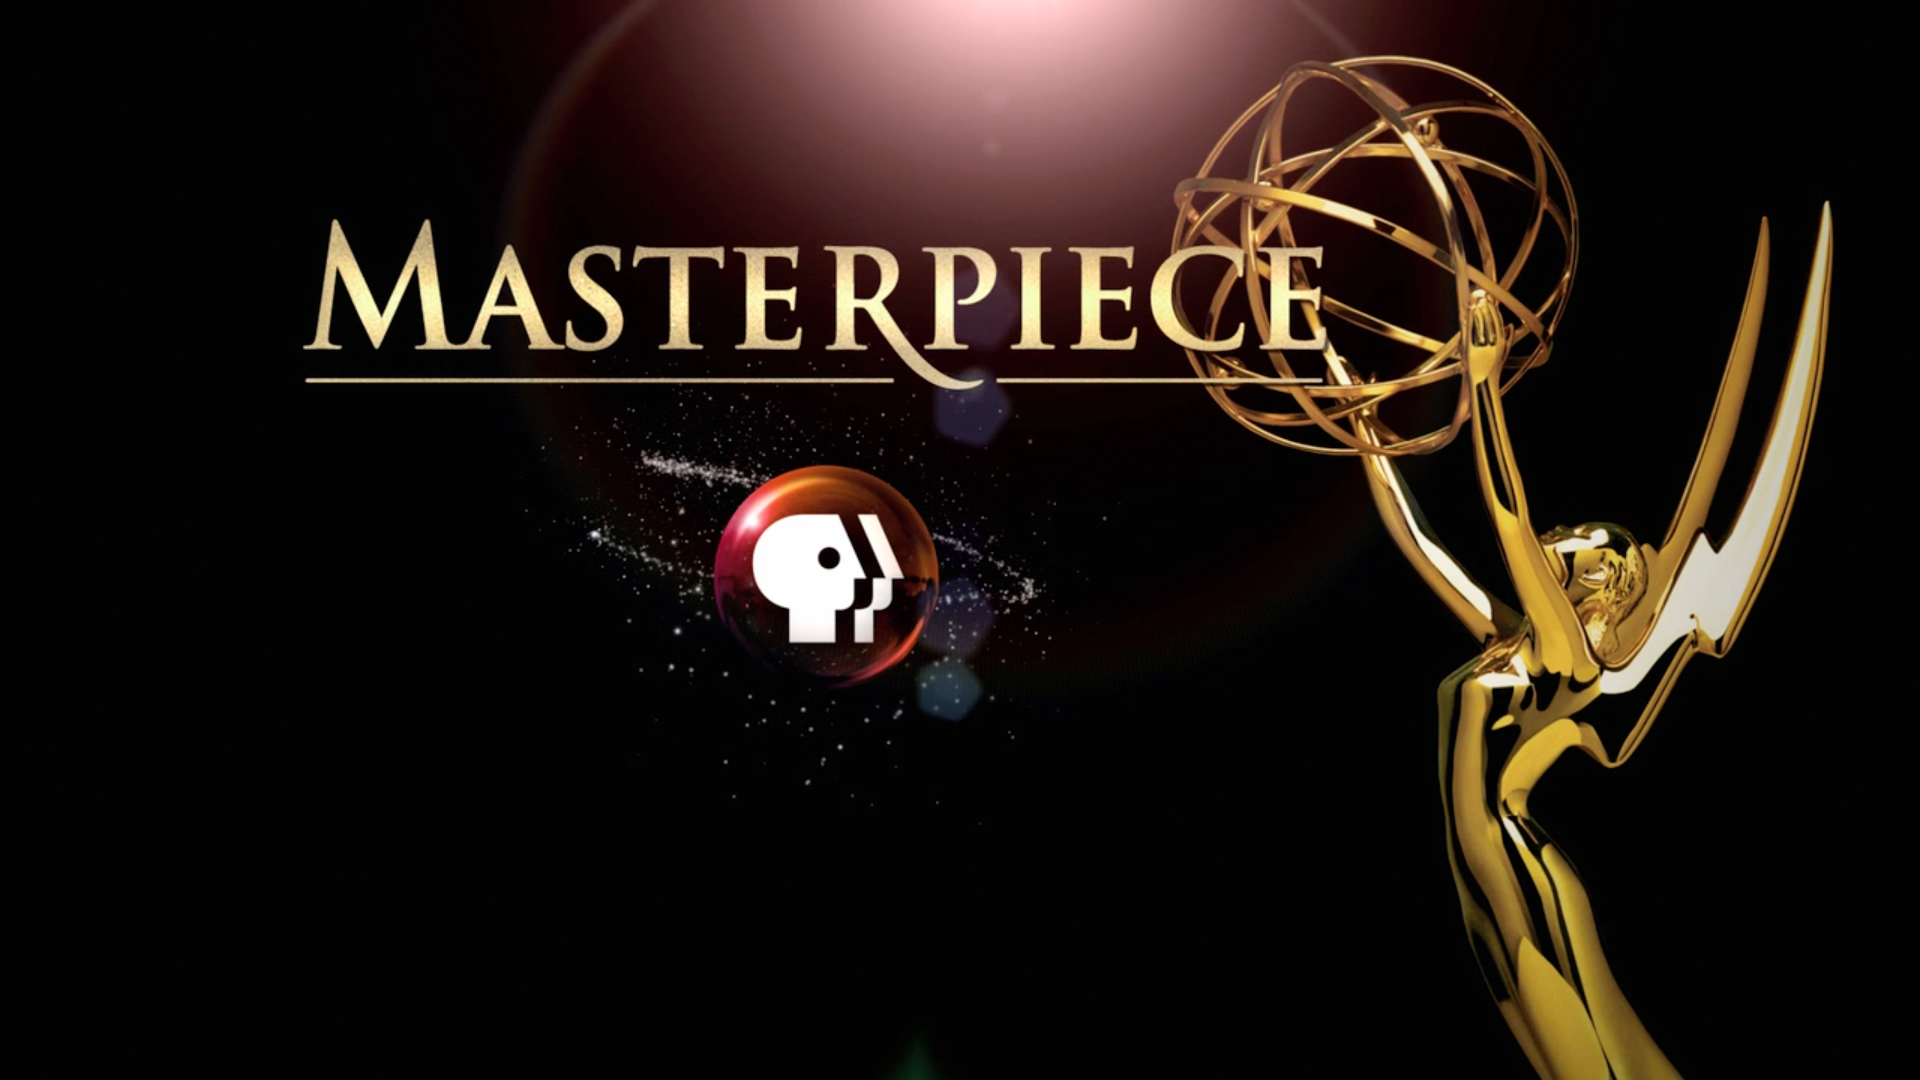 Masterpiece Theater Programs Masterpiece Theater 2013 Schedule Pbs